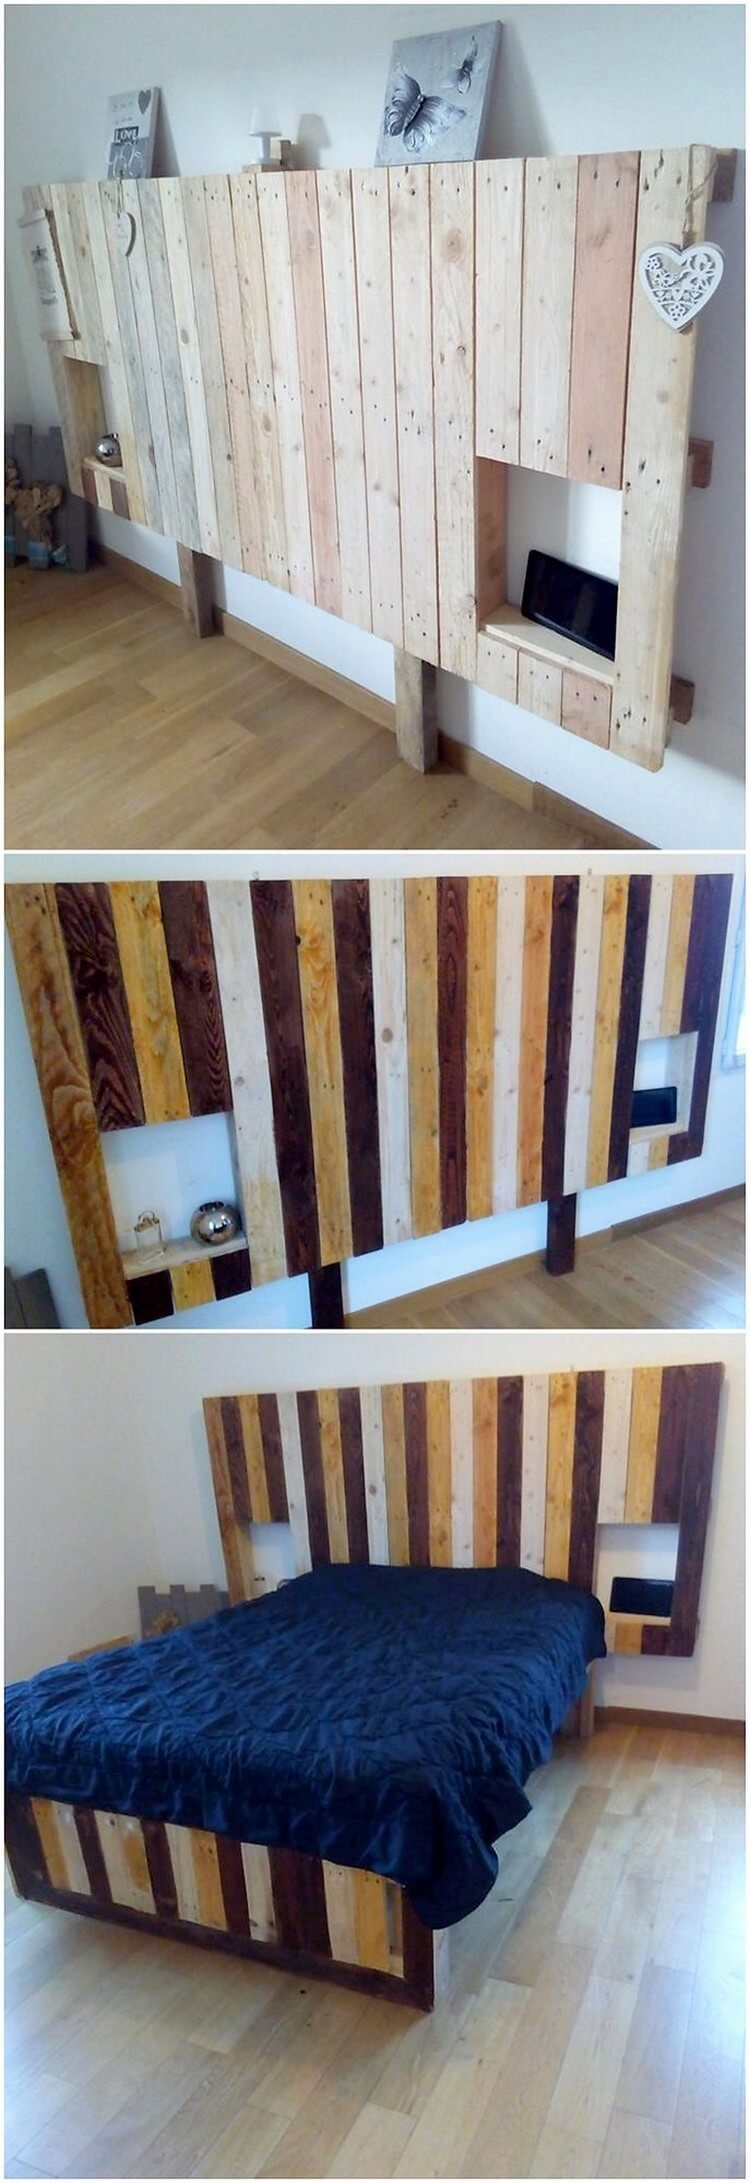 Pallet Bed with Headboard